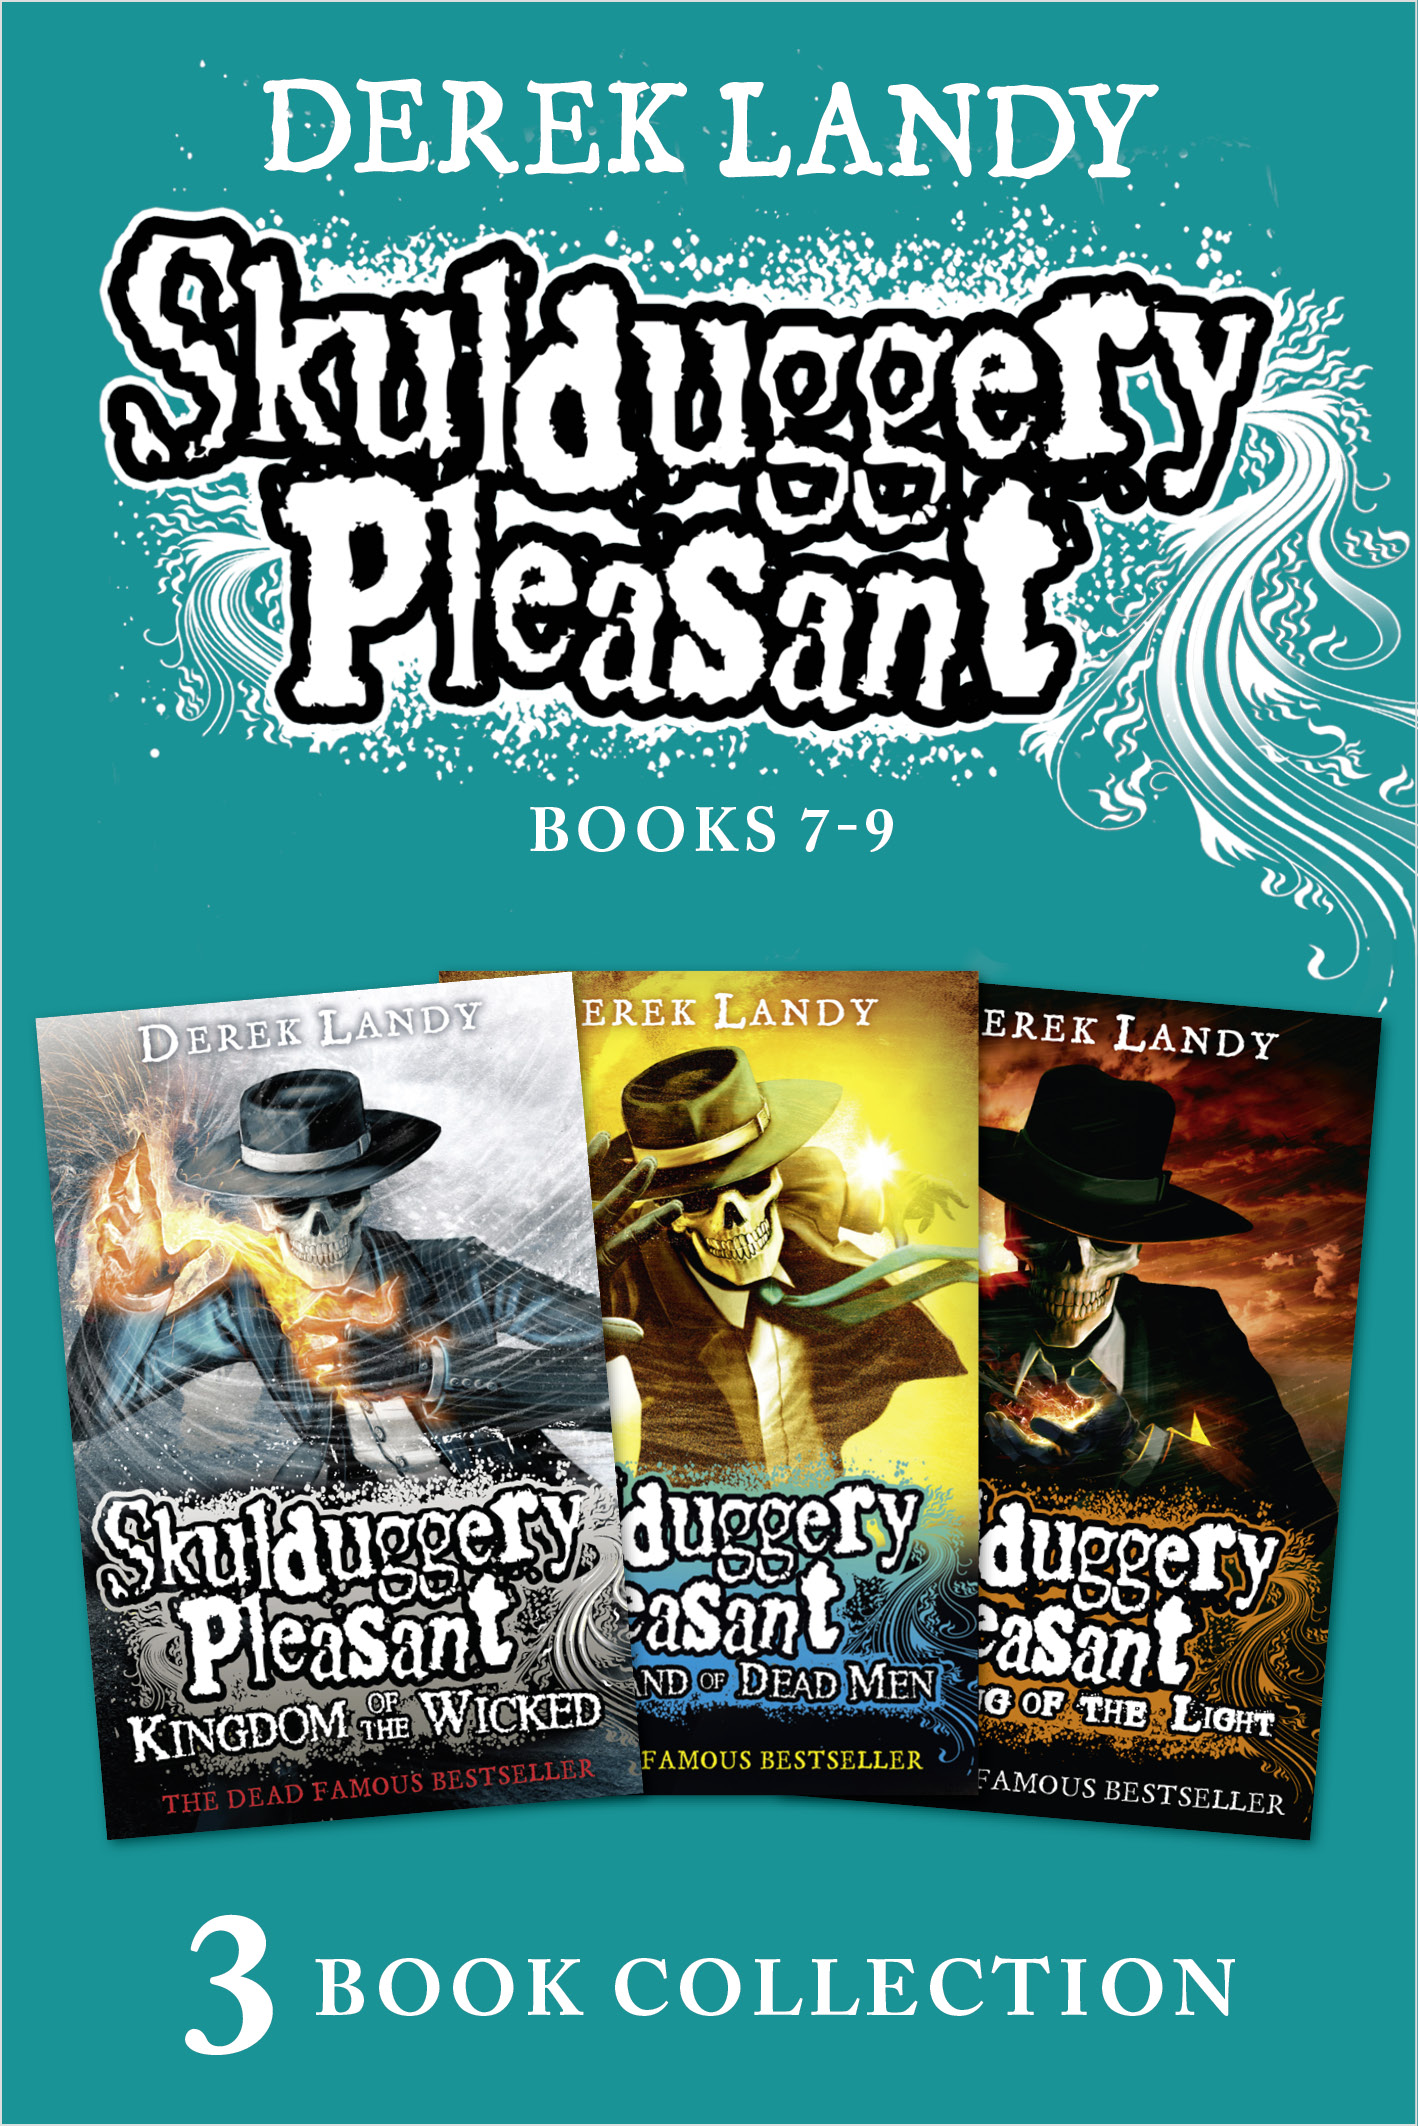 цена Derek Landy Skulduggery Pleasant: Books 7 - 9 онлайн в 2017 году